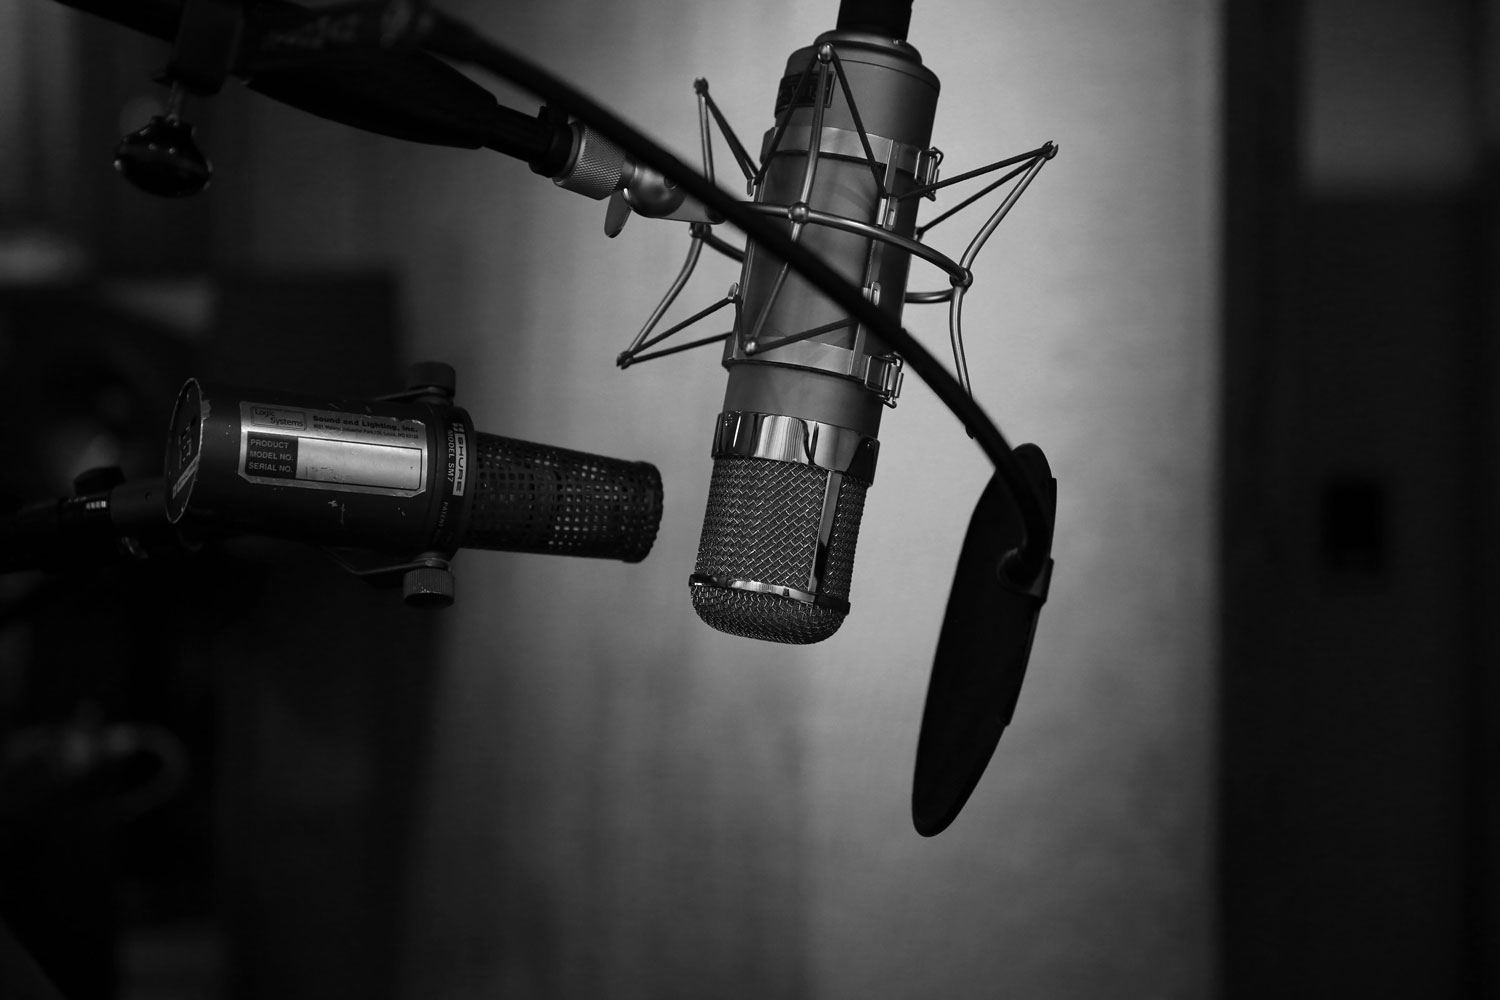 Black and white photo of a microphone.